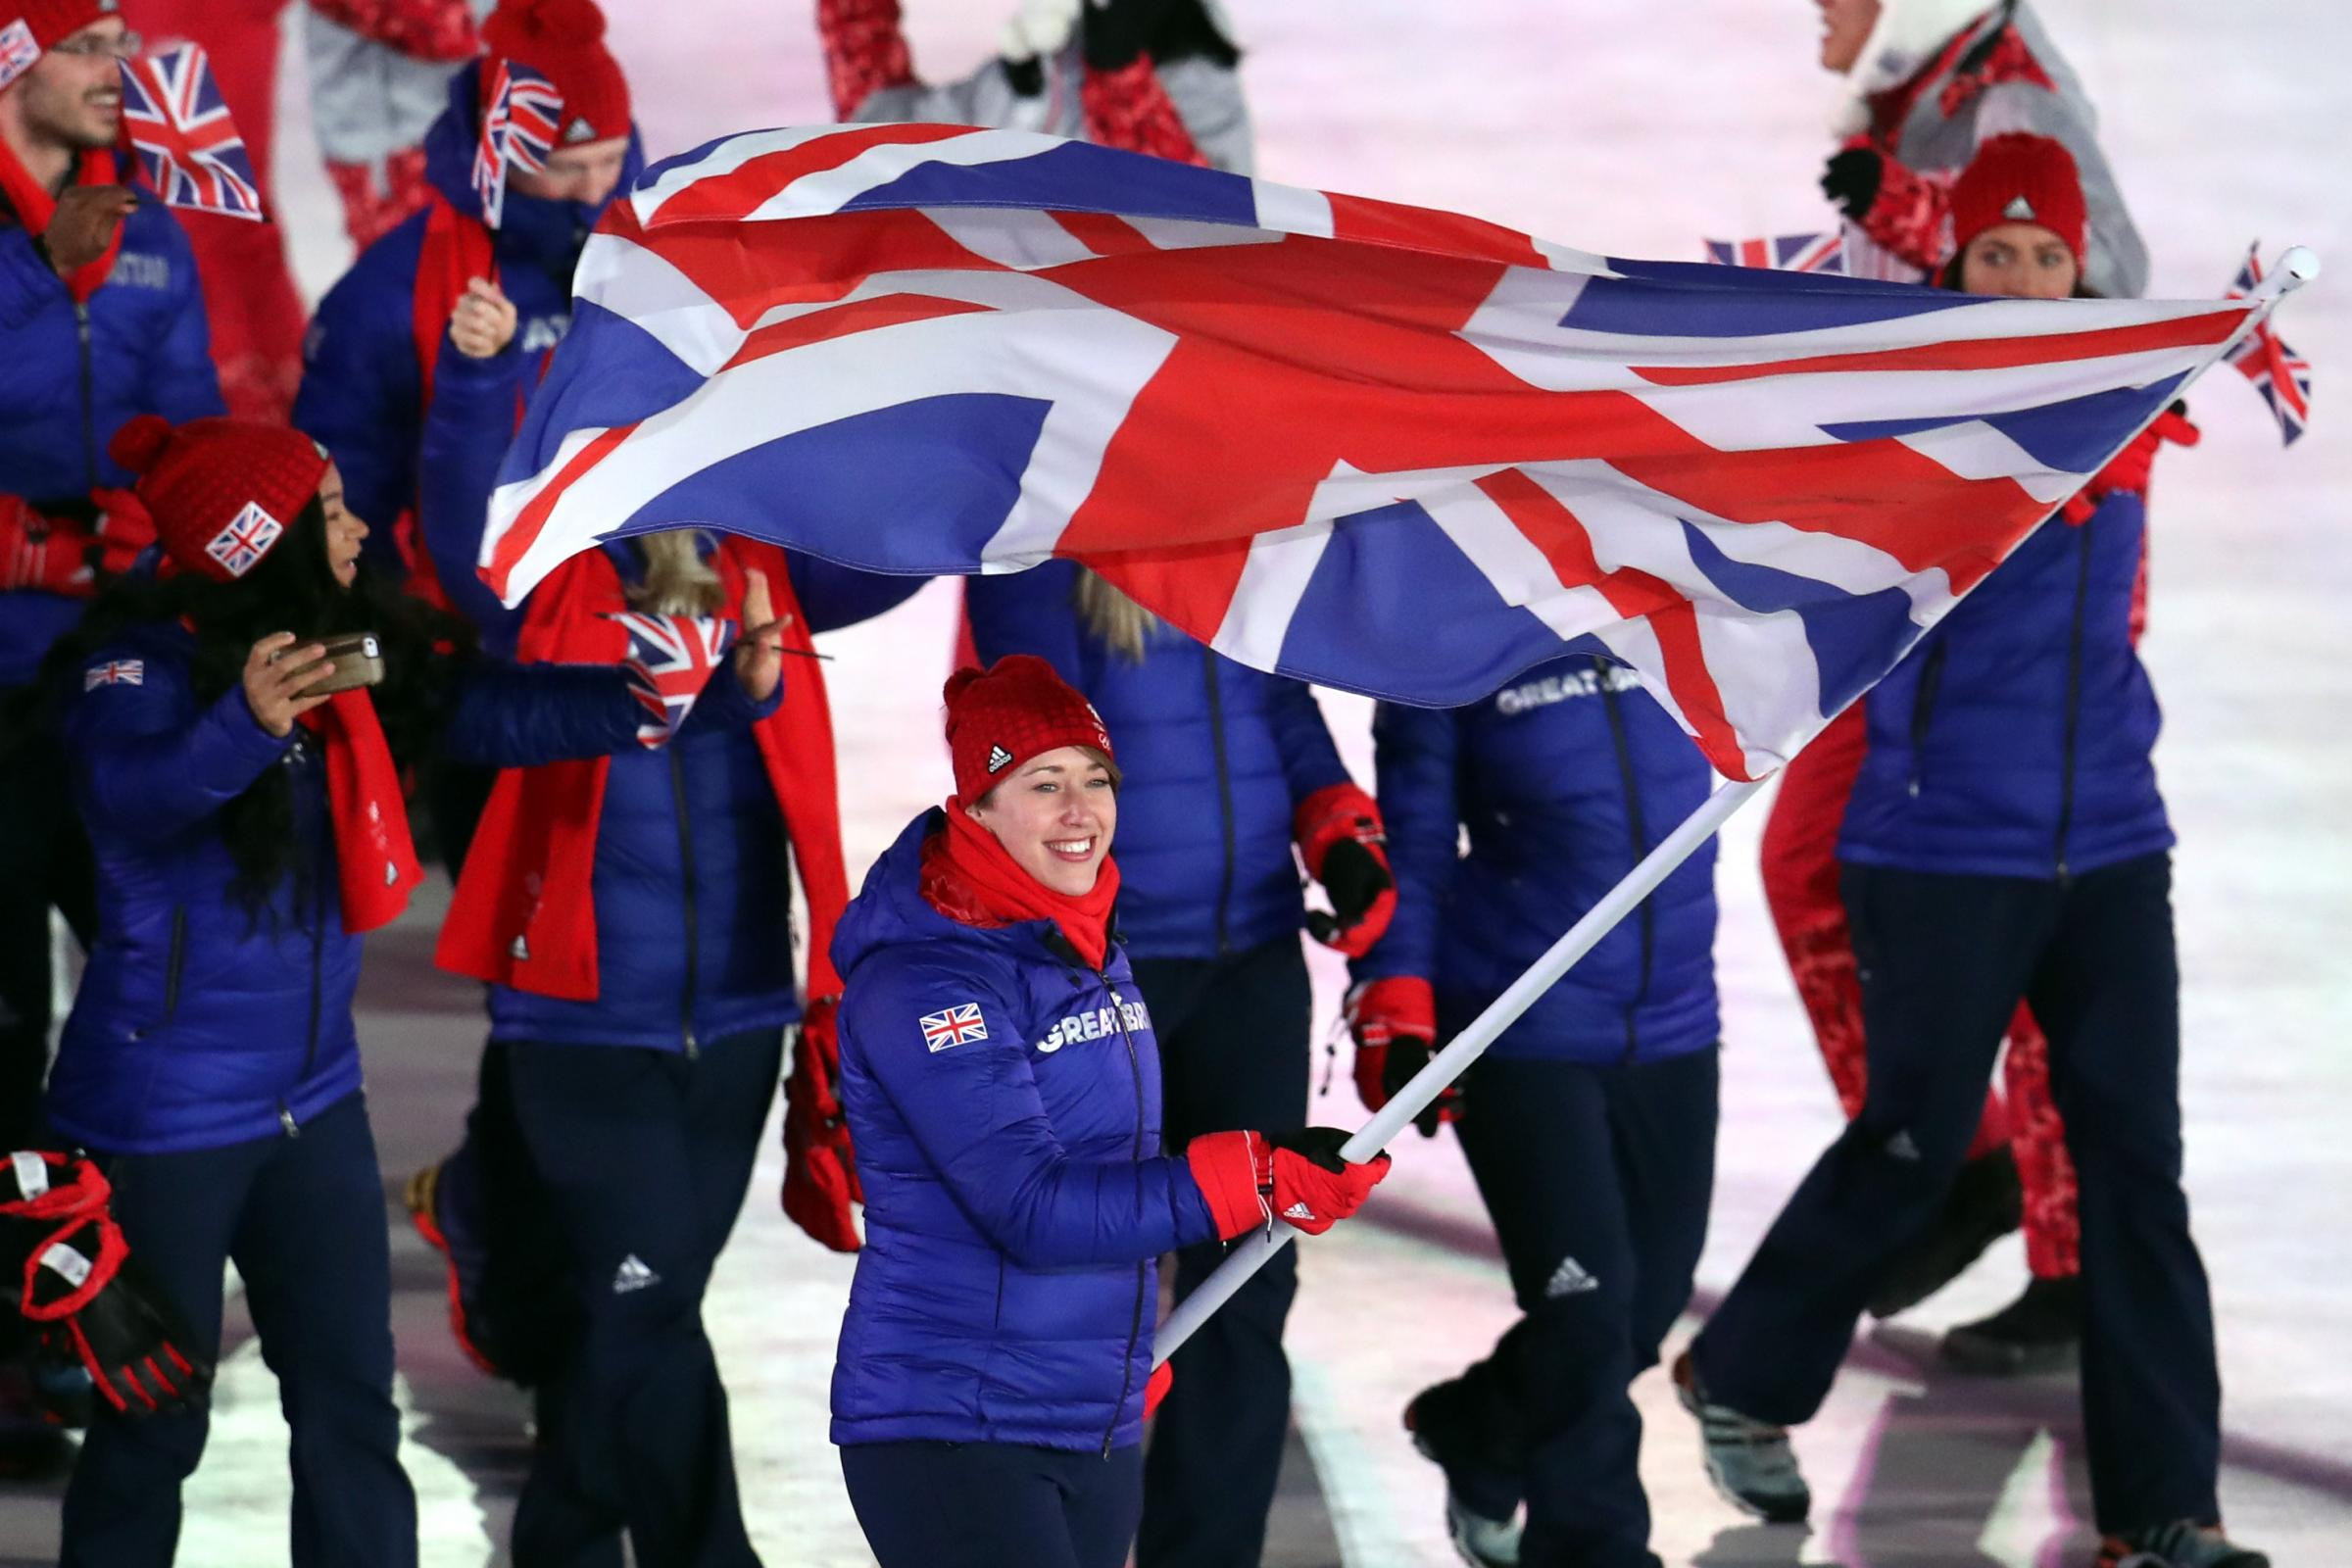 Defending Olympic skeleton champion Lizzy Yarnold, Great Britain's flag bearer at the opening ceremony, is coming into form in Pyeongchang (Mike Egerton/PA Images)